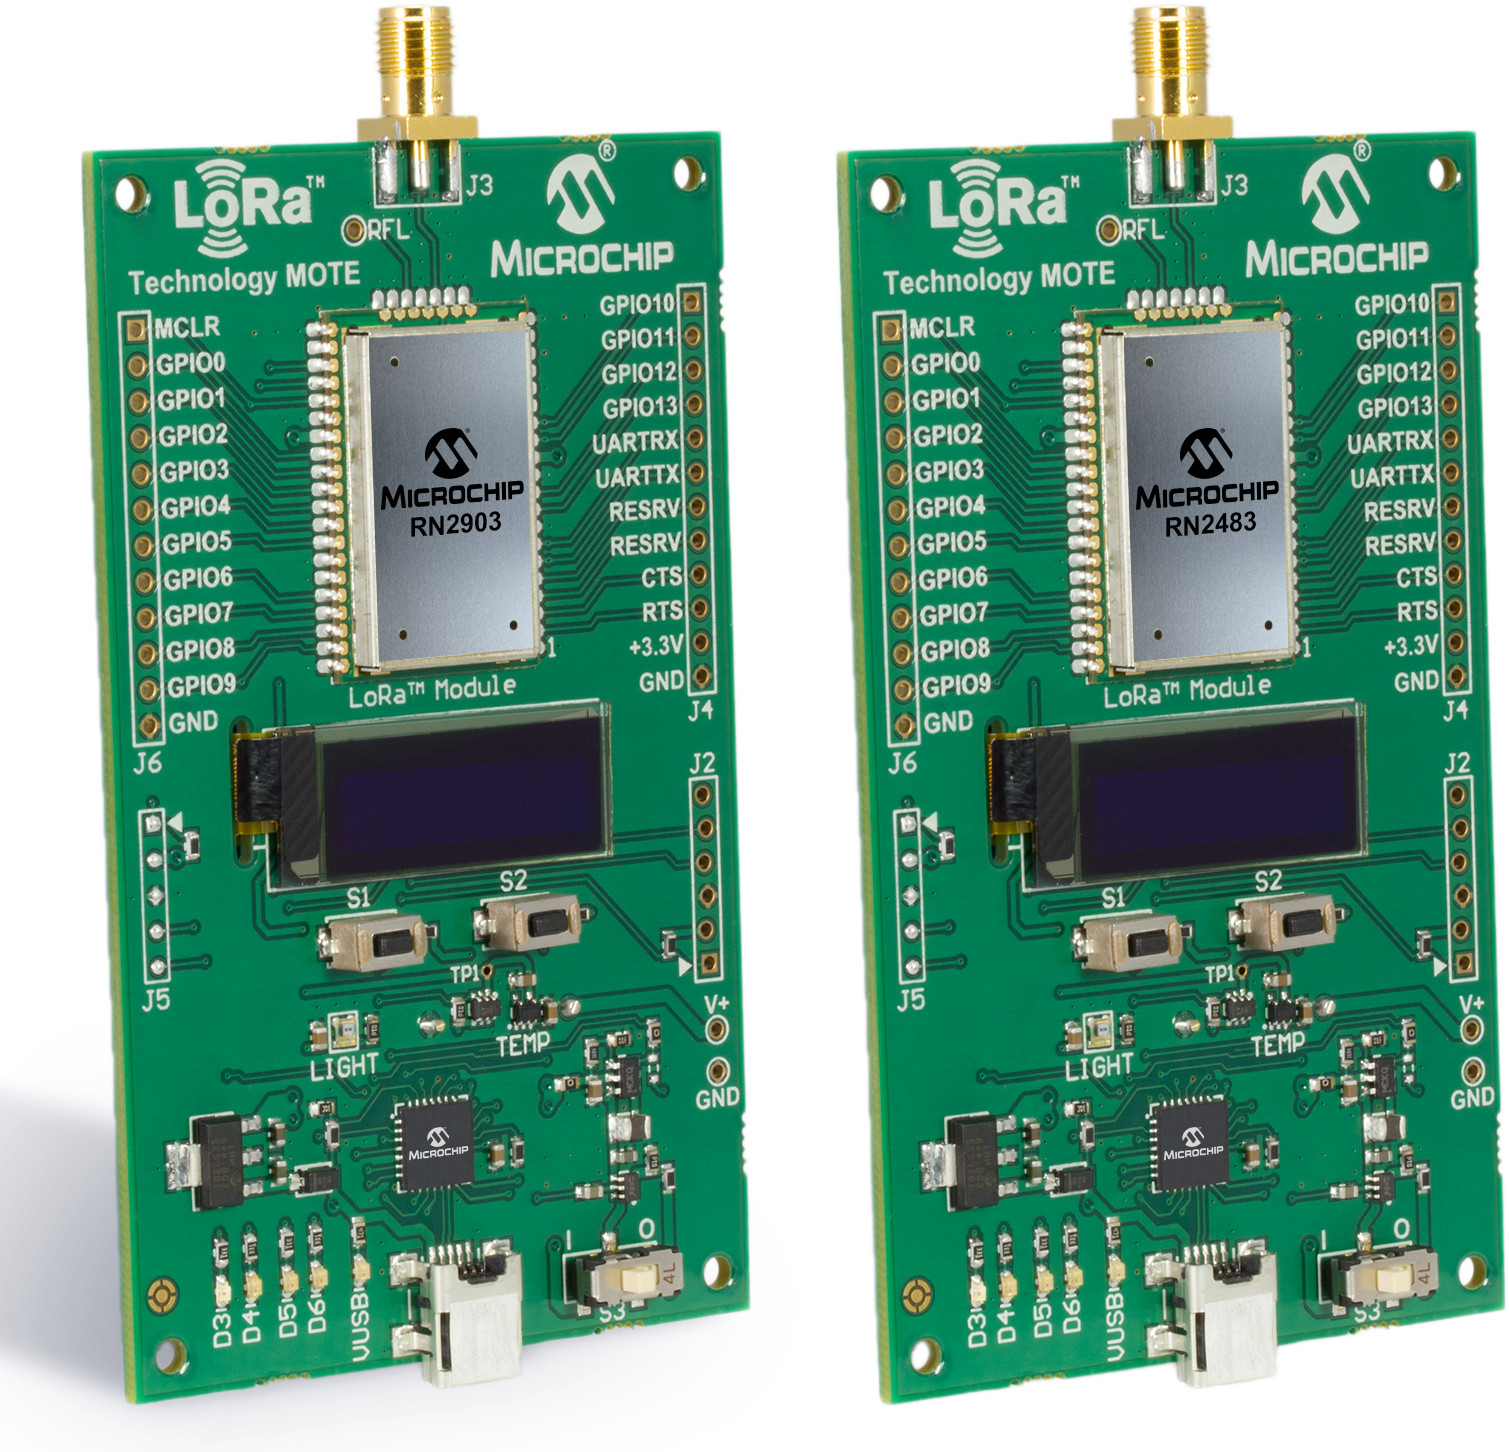 Microchip Introduces 11 Rn2483 Amp Rn2903 Lora Modules And